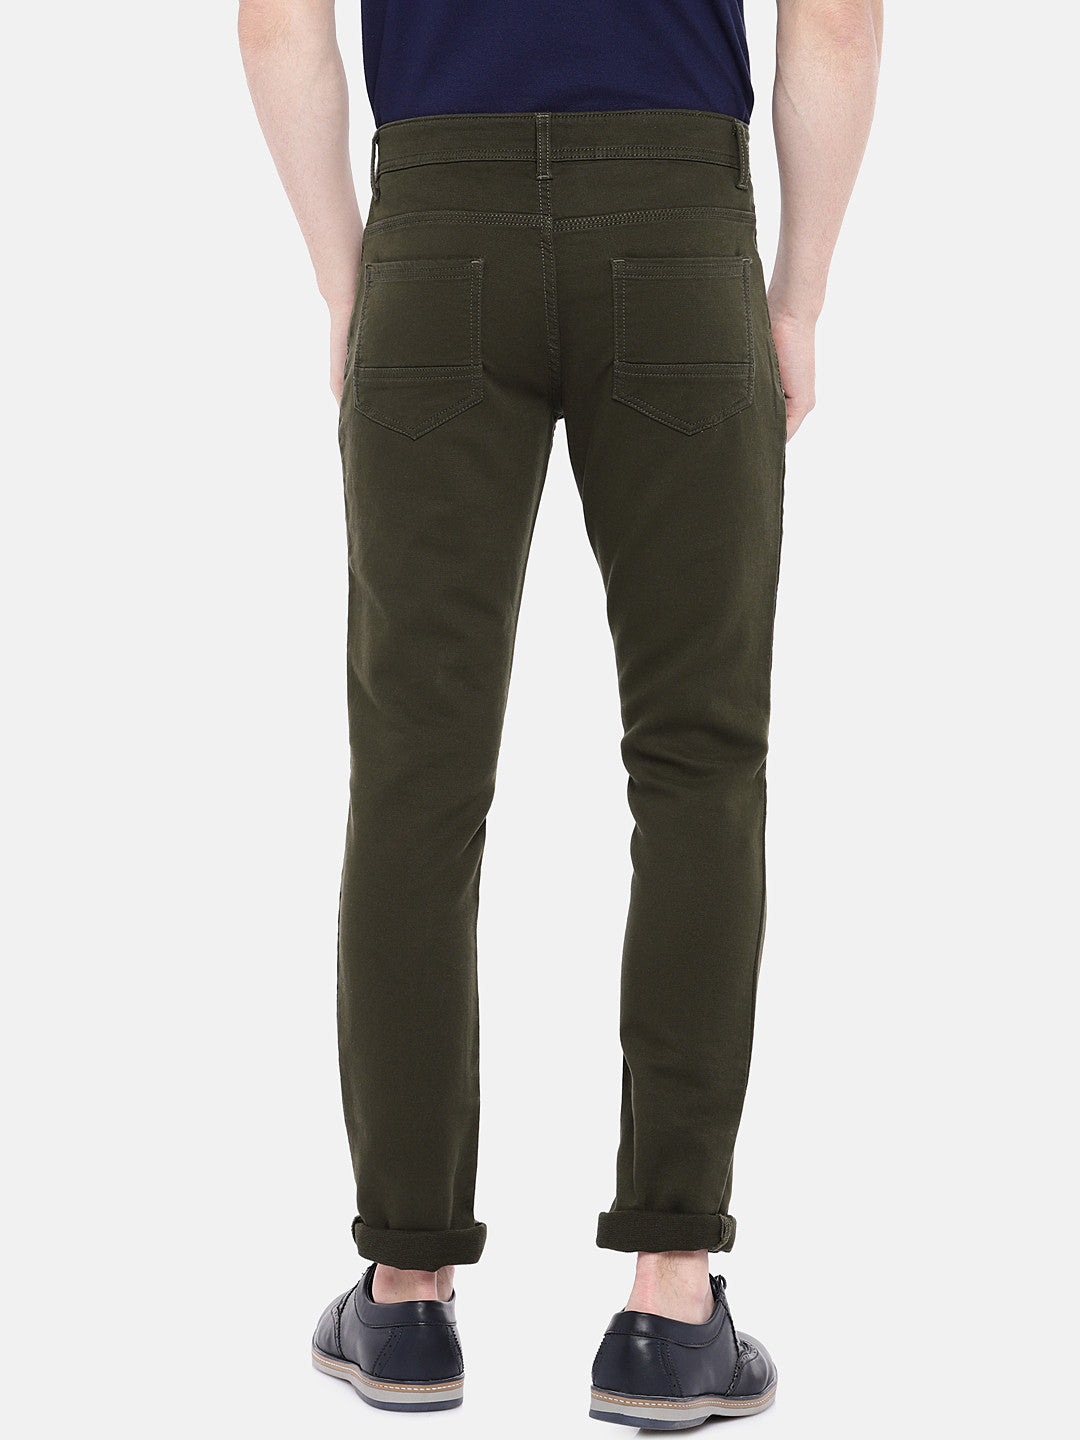 Olive Green Regular Fit Solid Chinos-3